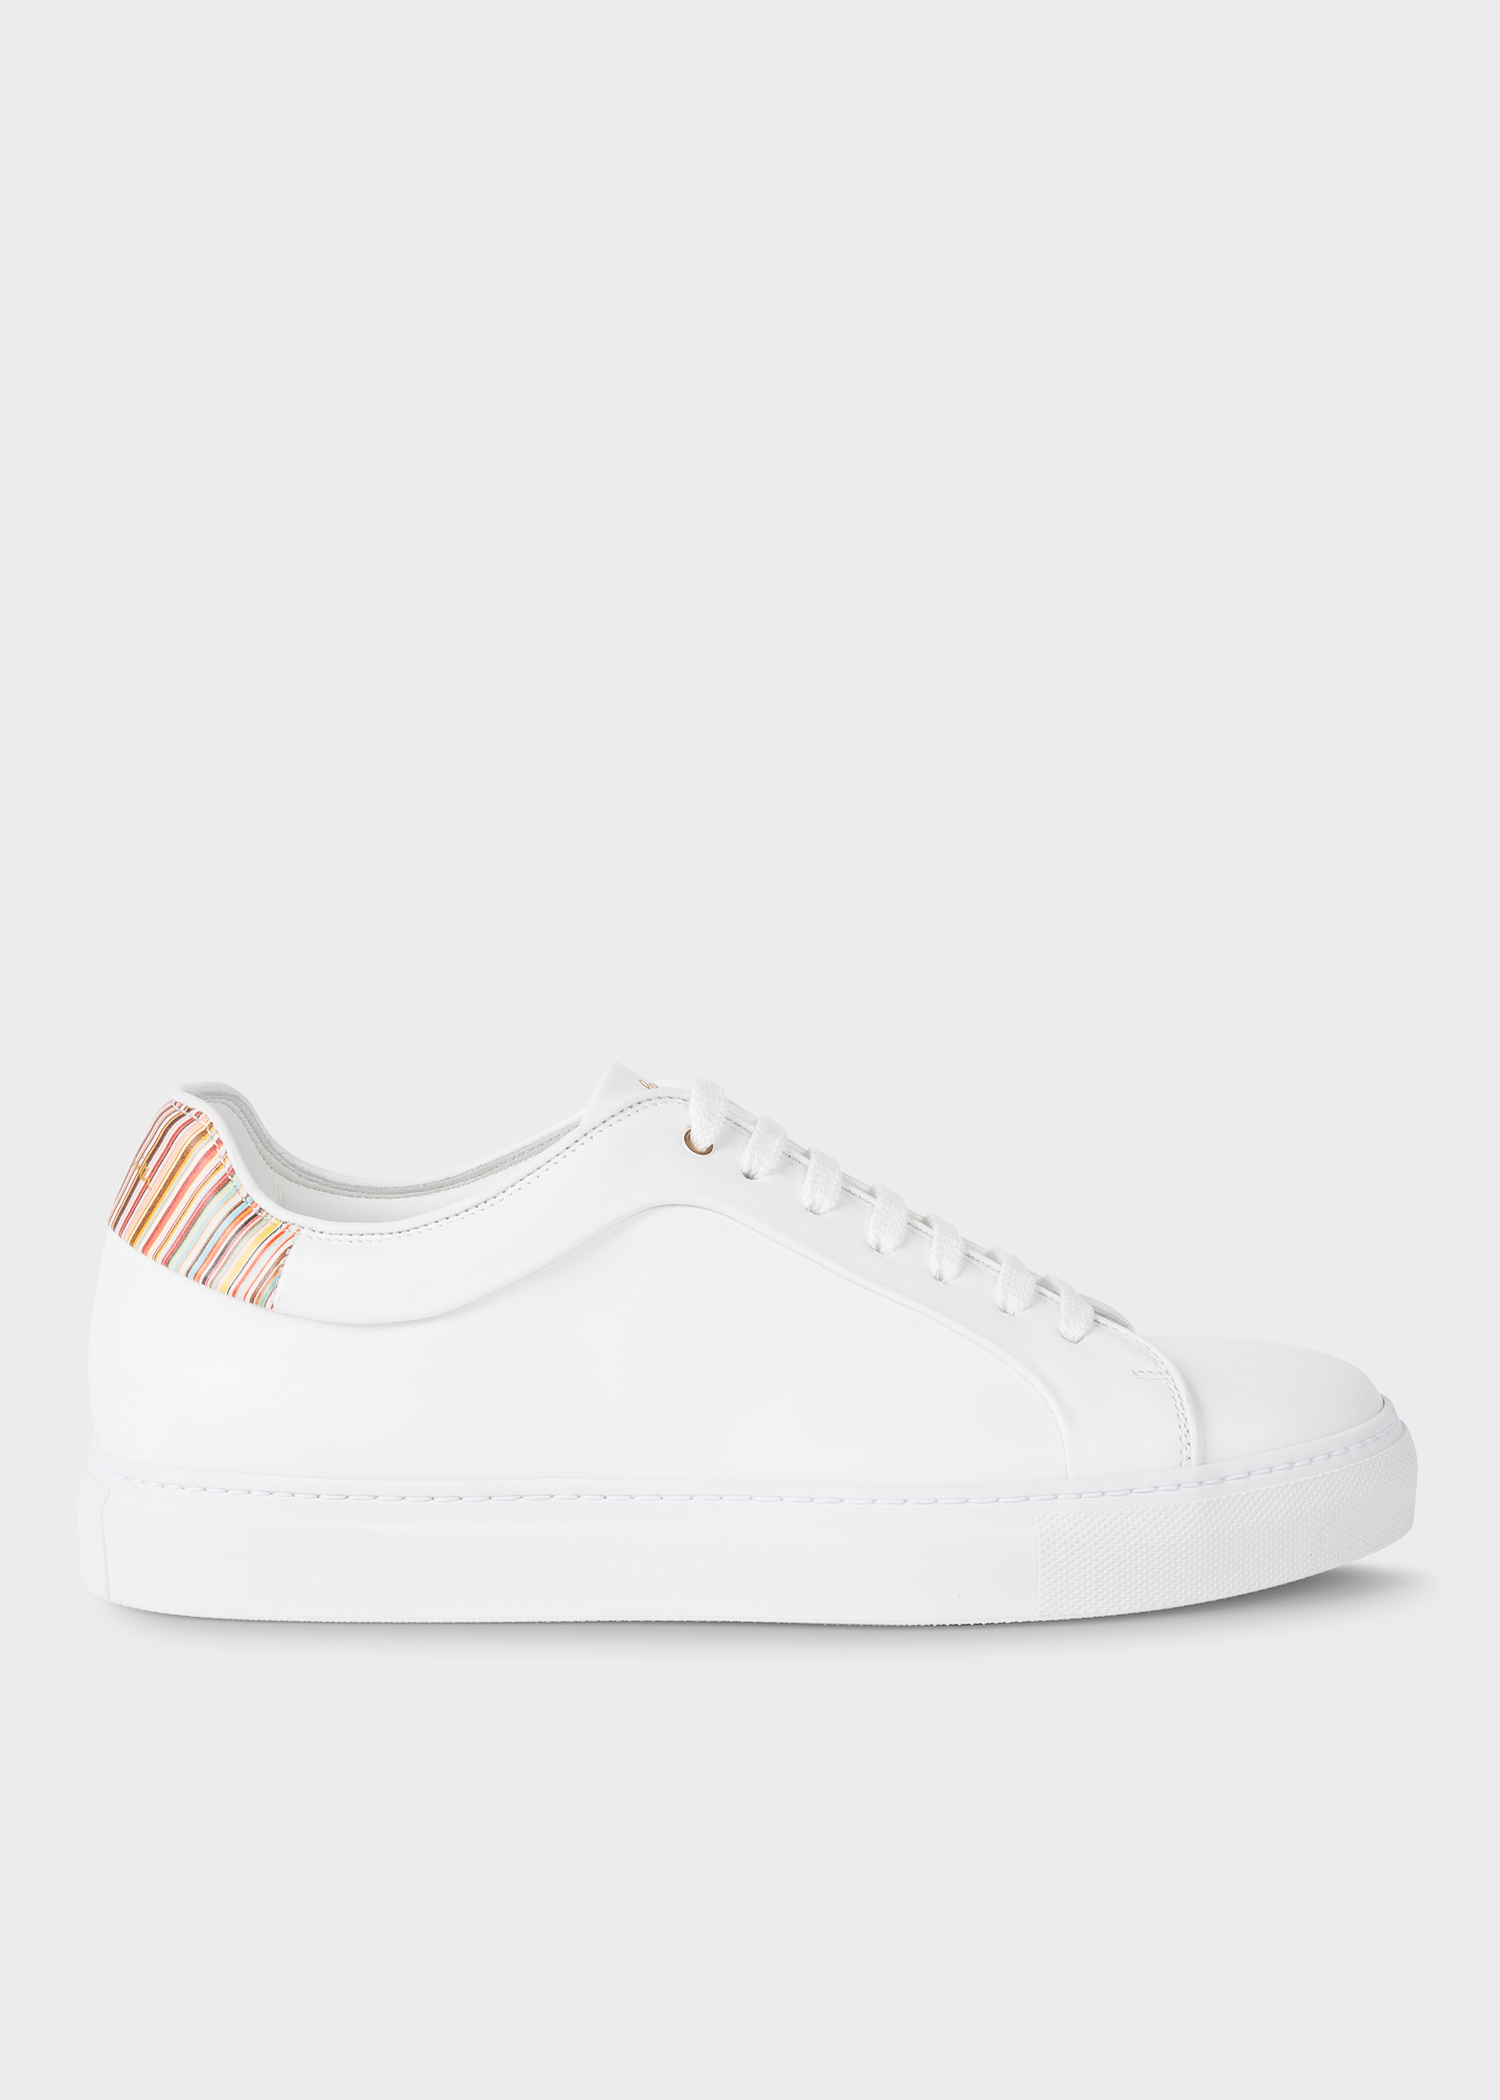 Paul Baskets 'signature En Homme Blanches Cuir Stripe' 'basso' Y7gvfyb6